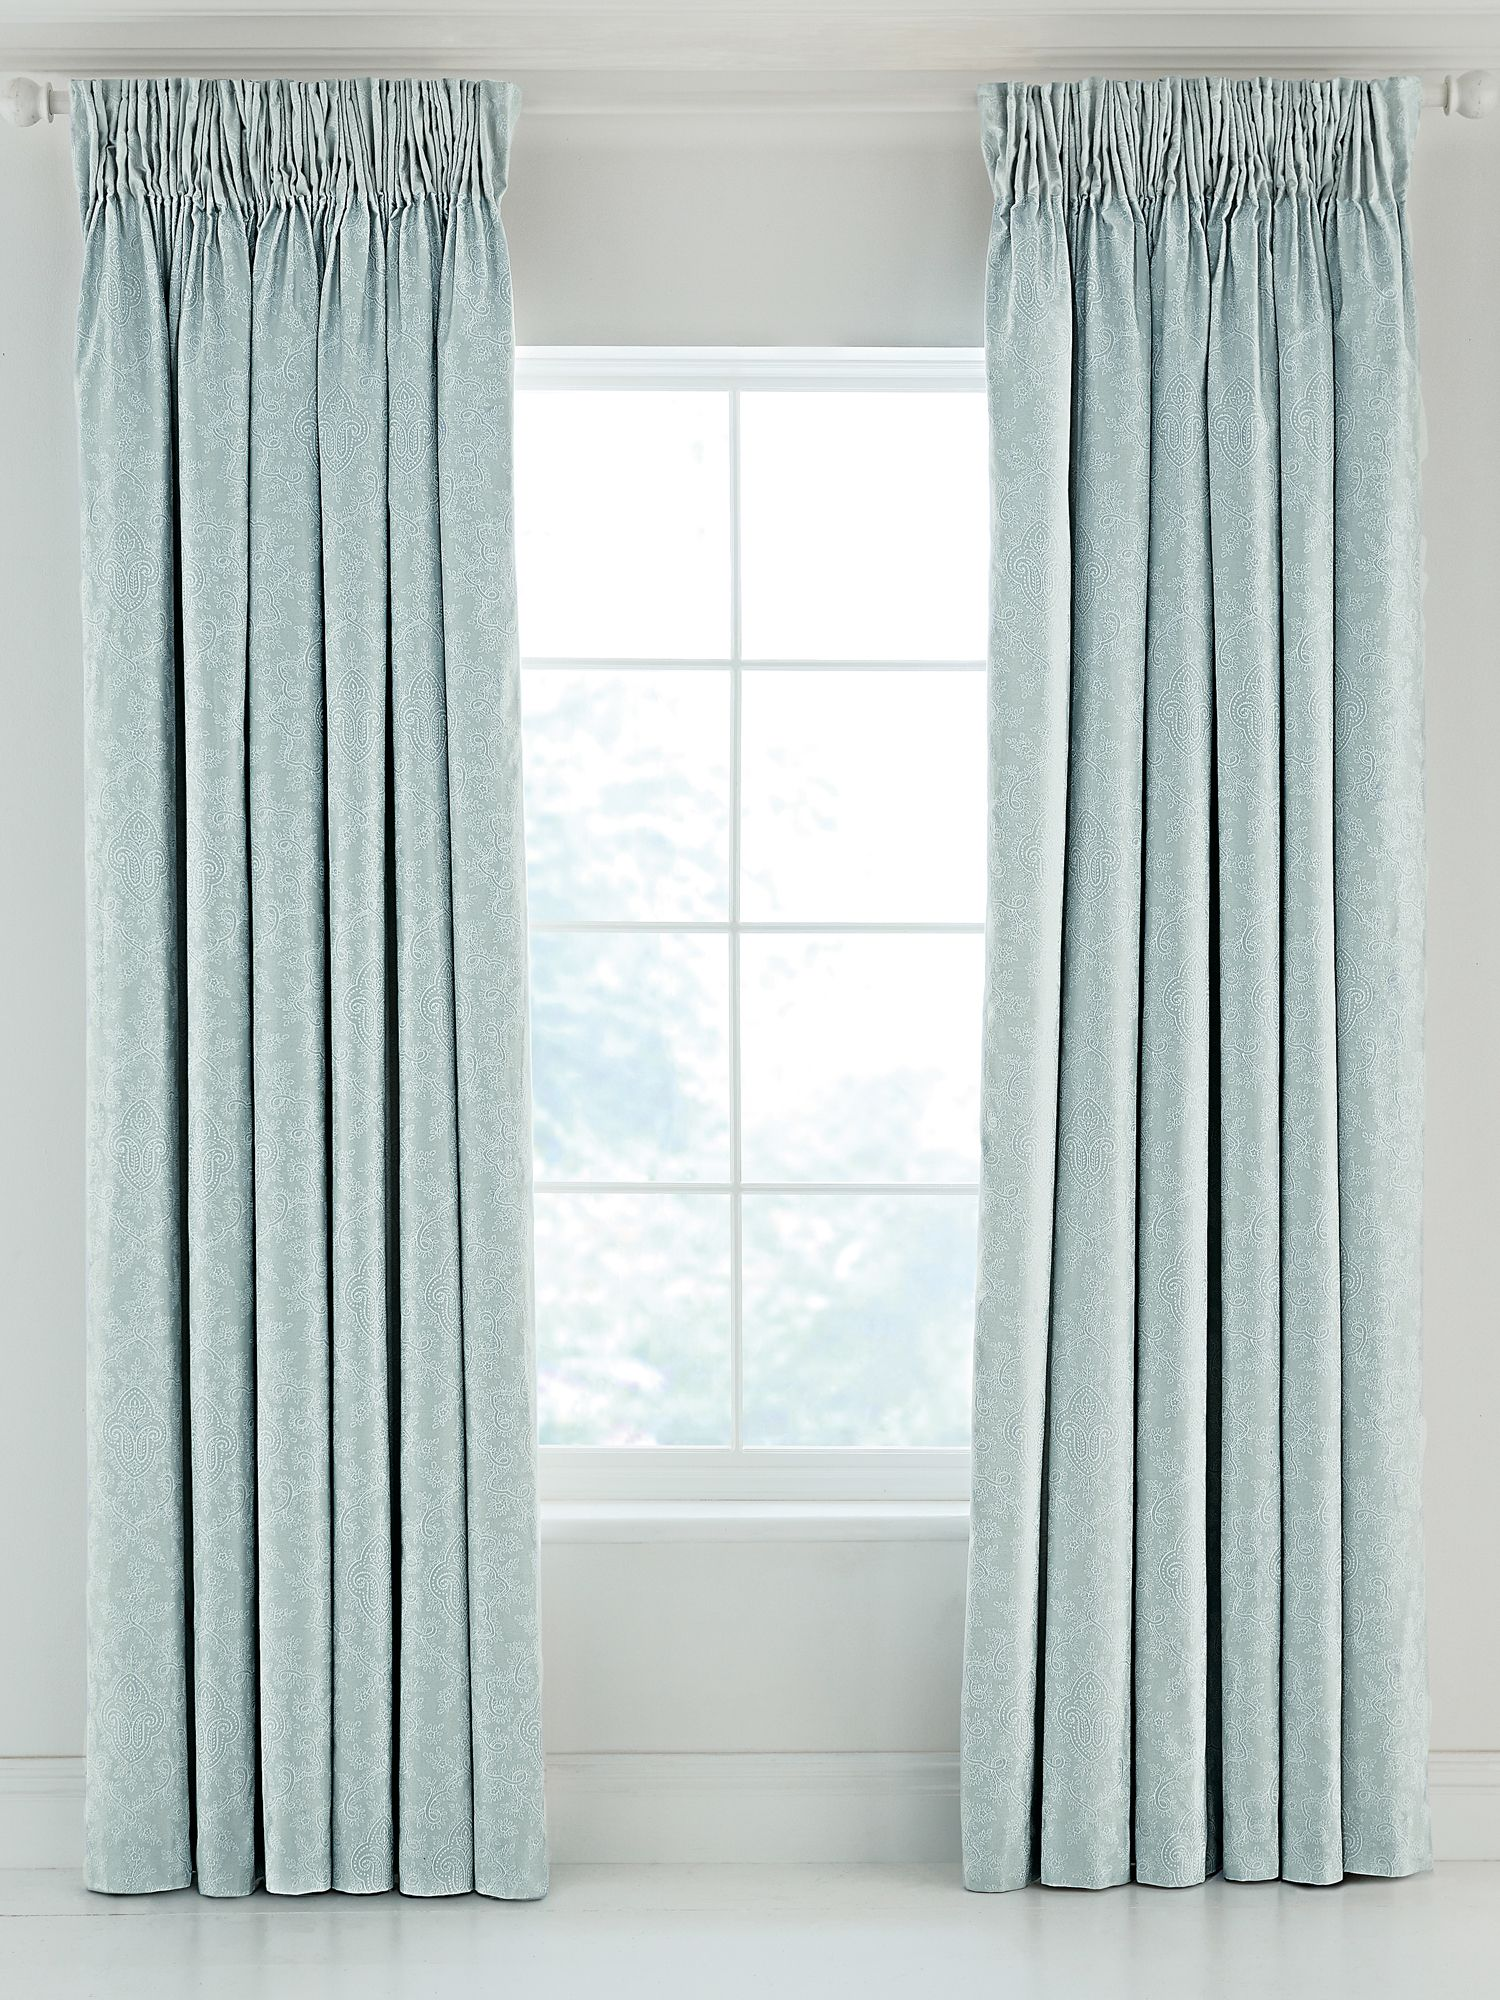 Fable Fable Callista lined curtains 90x90 duck egg